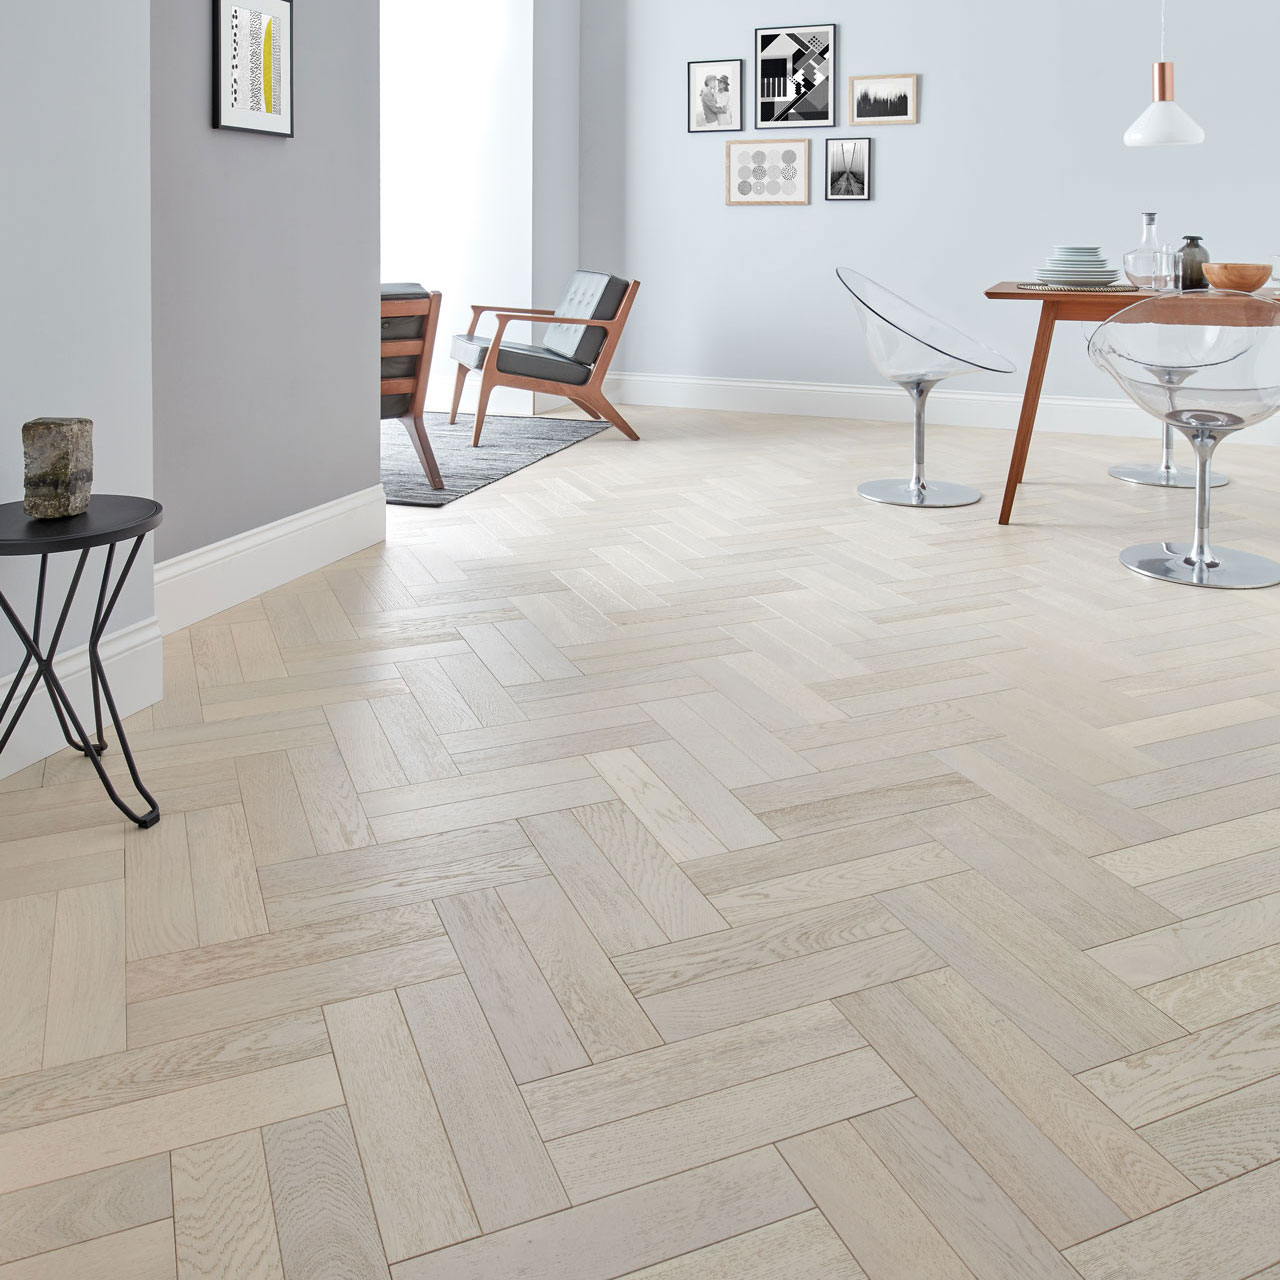 Goodrich Whitened Oak Parquet Flooring